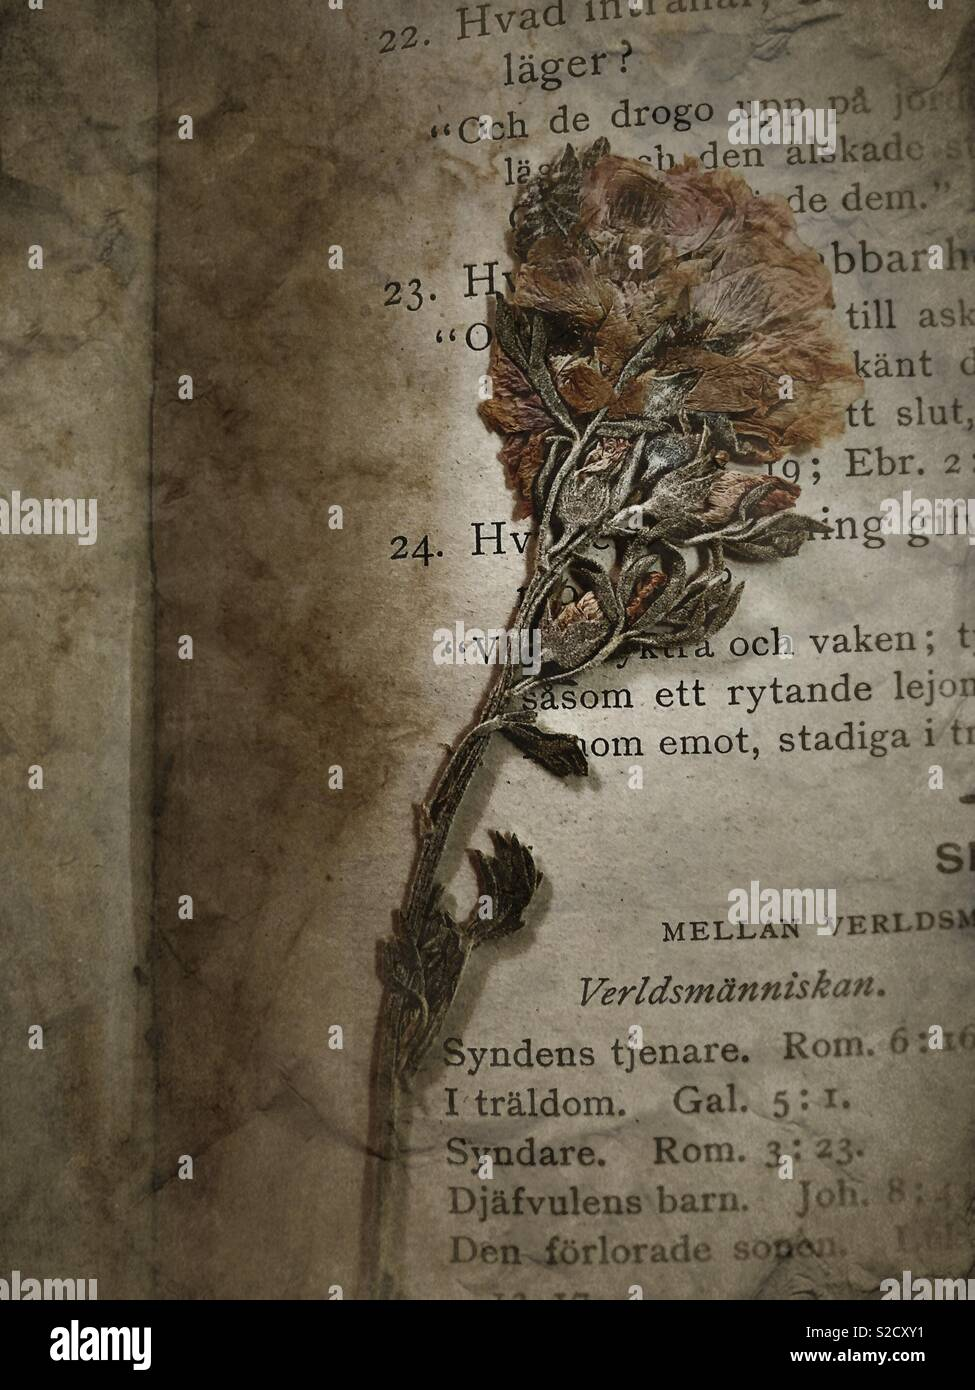 A pressed flower in an old book. - Stock Image